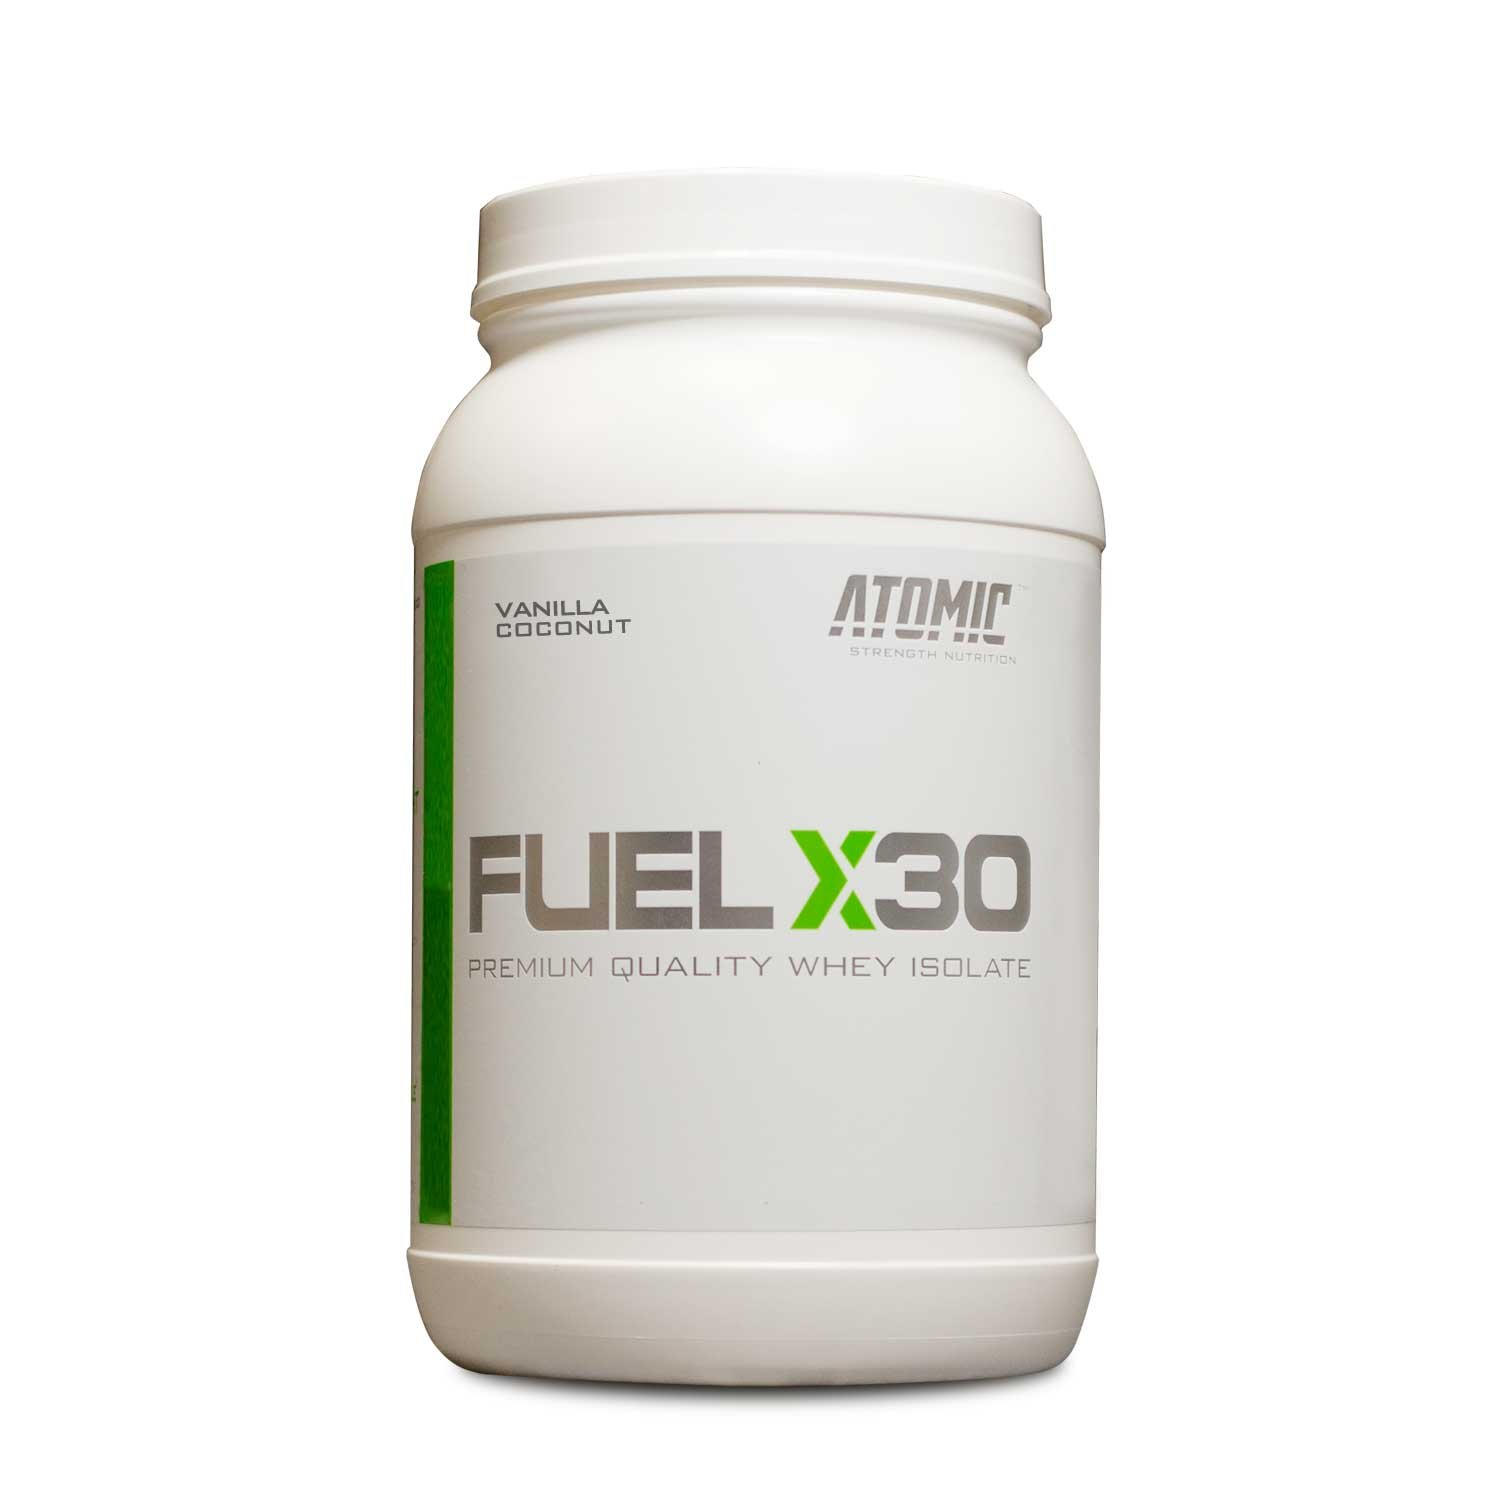 Delicious Vanilla Coconut Flavor, Fuel X30 Premium Quality Whey Isolate Protein, Atomic Strength Nutrition, 2 Pounds, 25g Protein Per Scoop